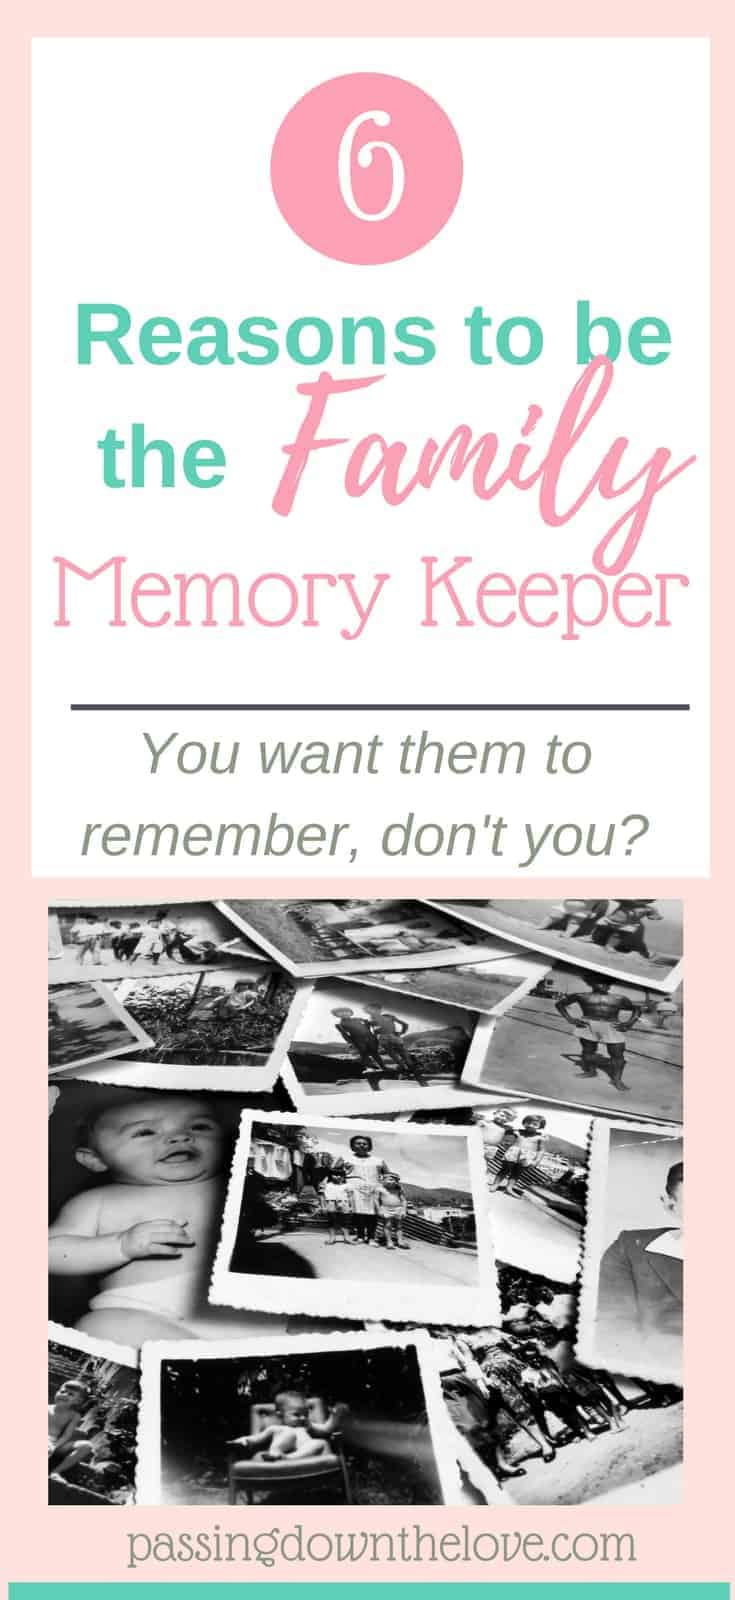 Why you should be the family's memory keeper.  Help them remember their past and their present.  If not you, then who?